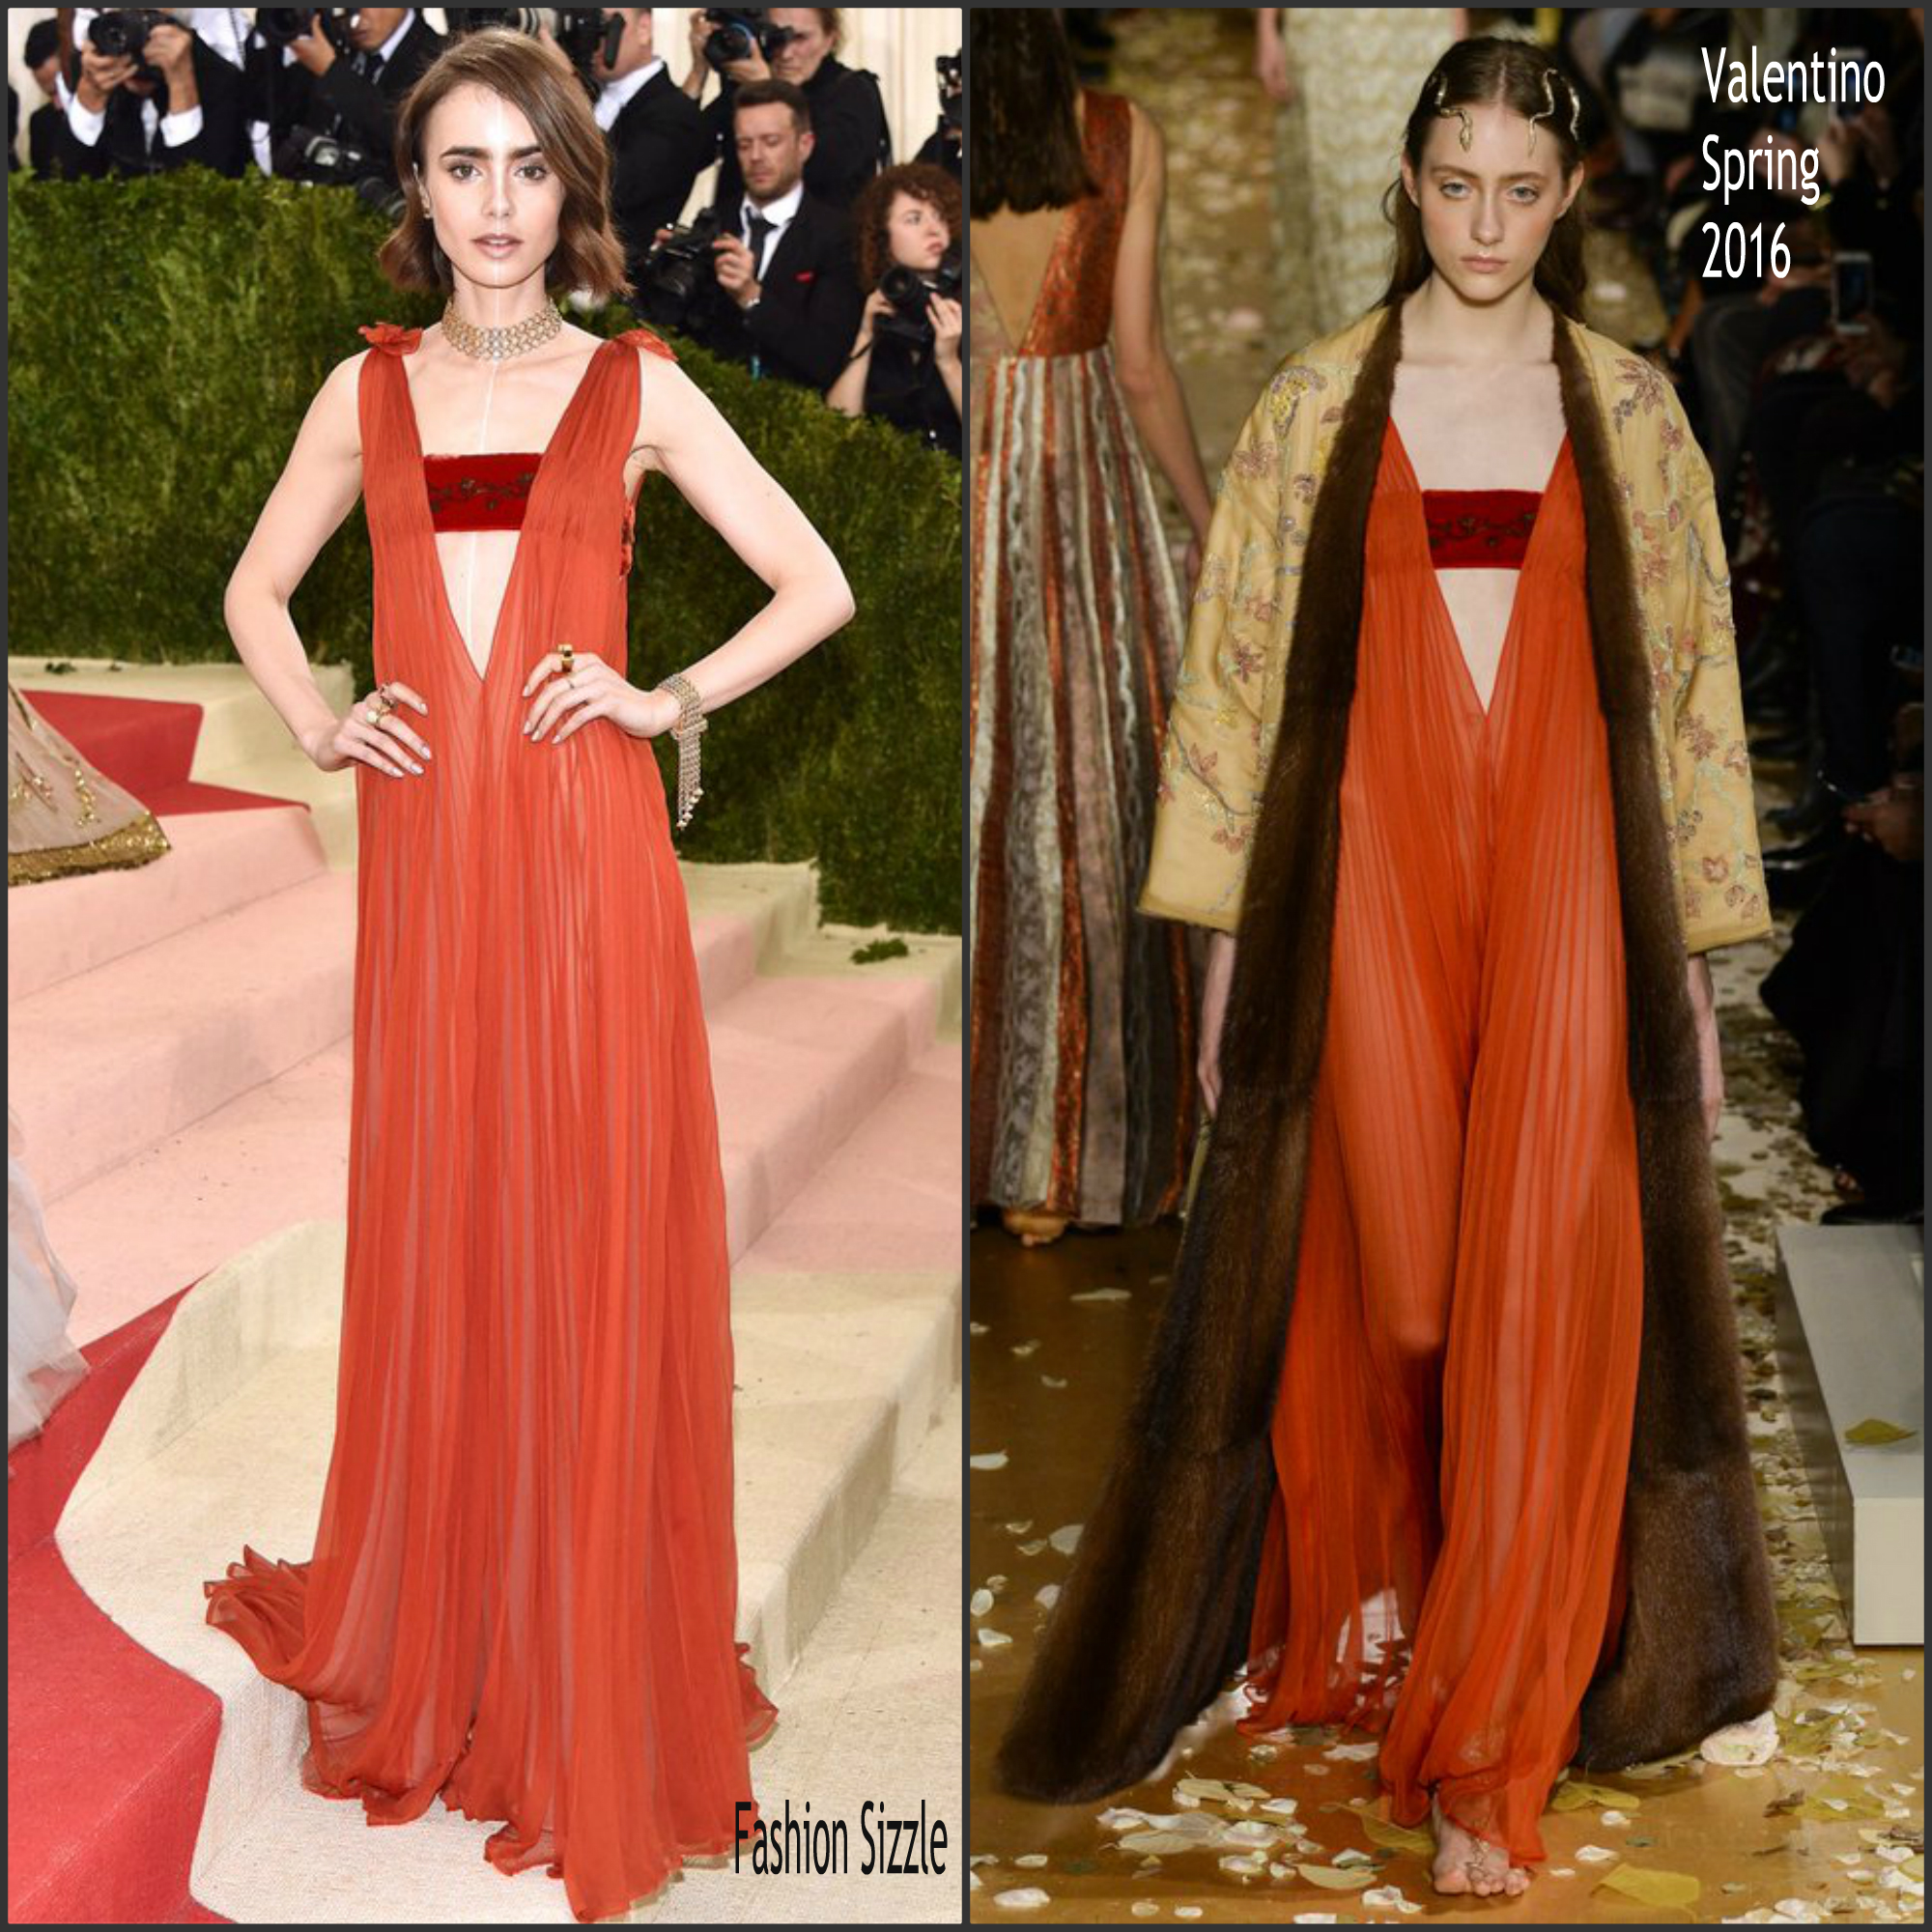 lily collins in valentino 2016 met gala fashion sizzle. Black Bedroom Furniture Sets. Home Design Ideas